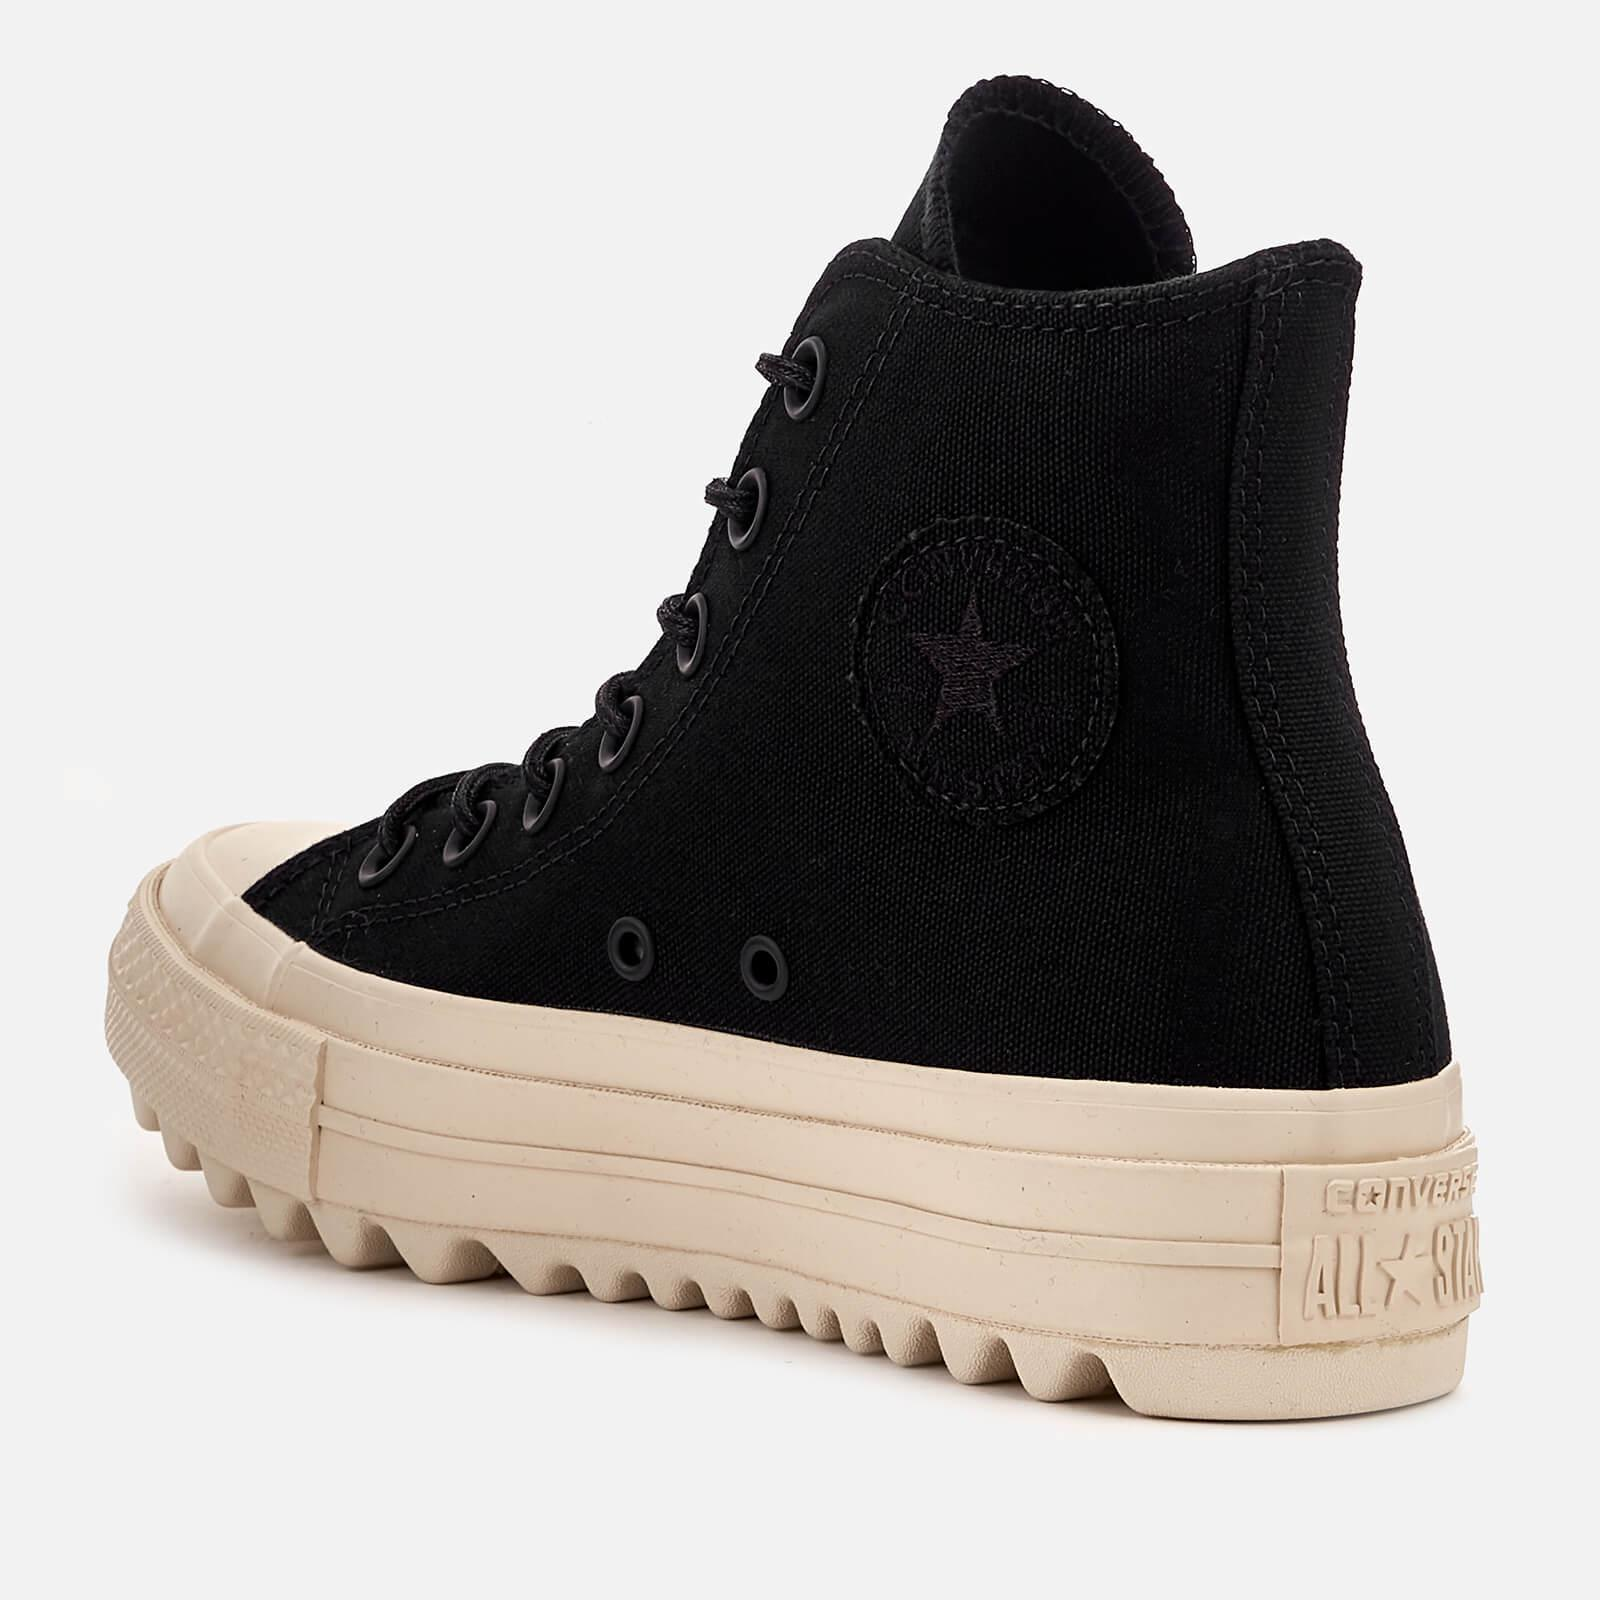 Converse Canvas Chuck Taylor All Star Lift Ripple Hi-top Trainers in Black